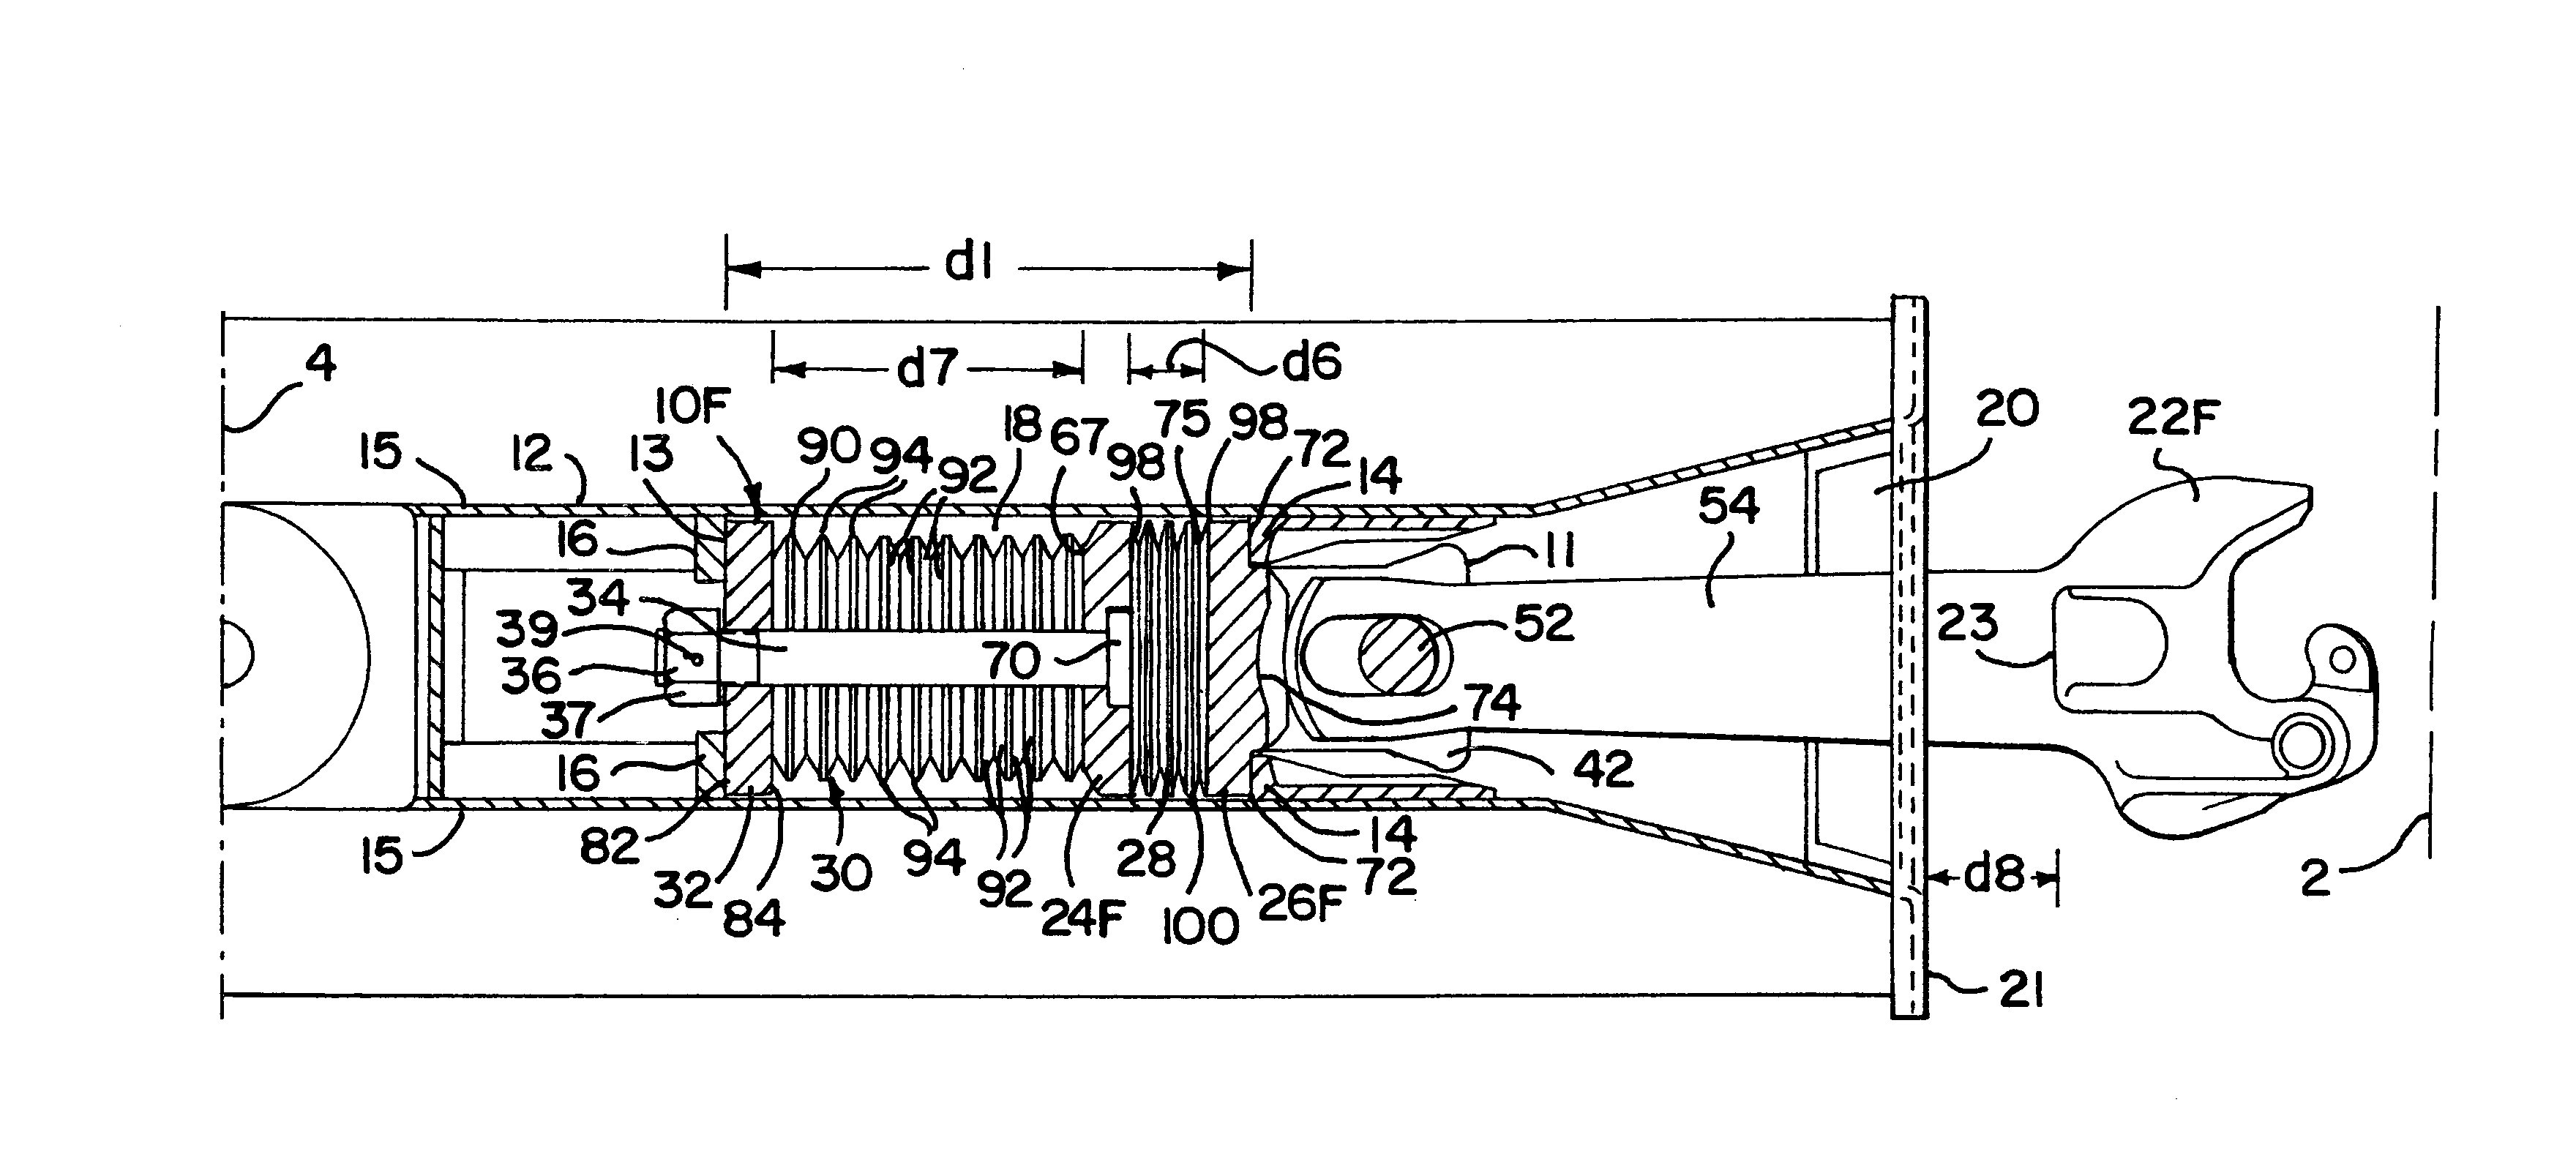 Patent Us6681943 Railcar Draft Gear Assembly And System Google I5 Engine Diagram Drawing